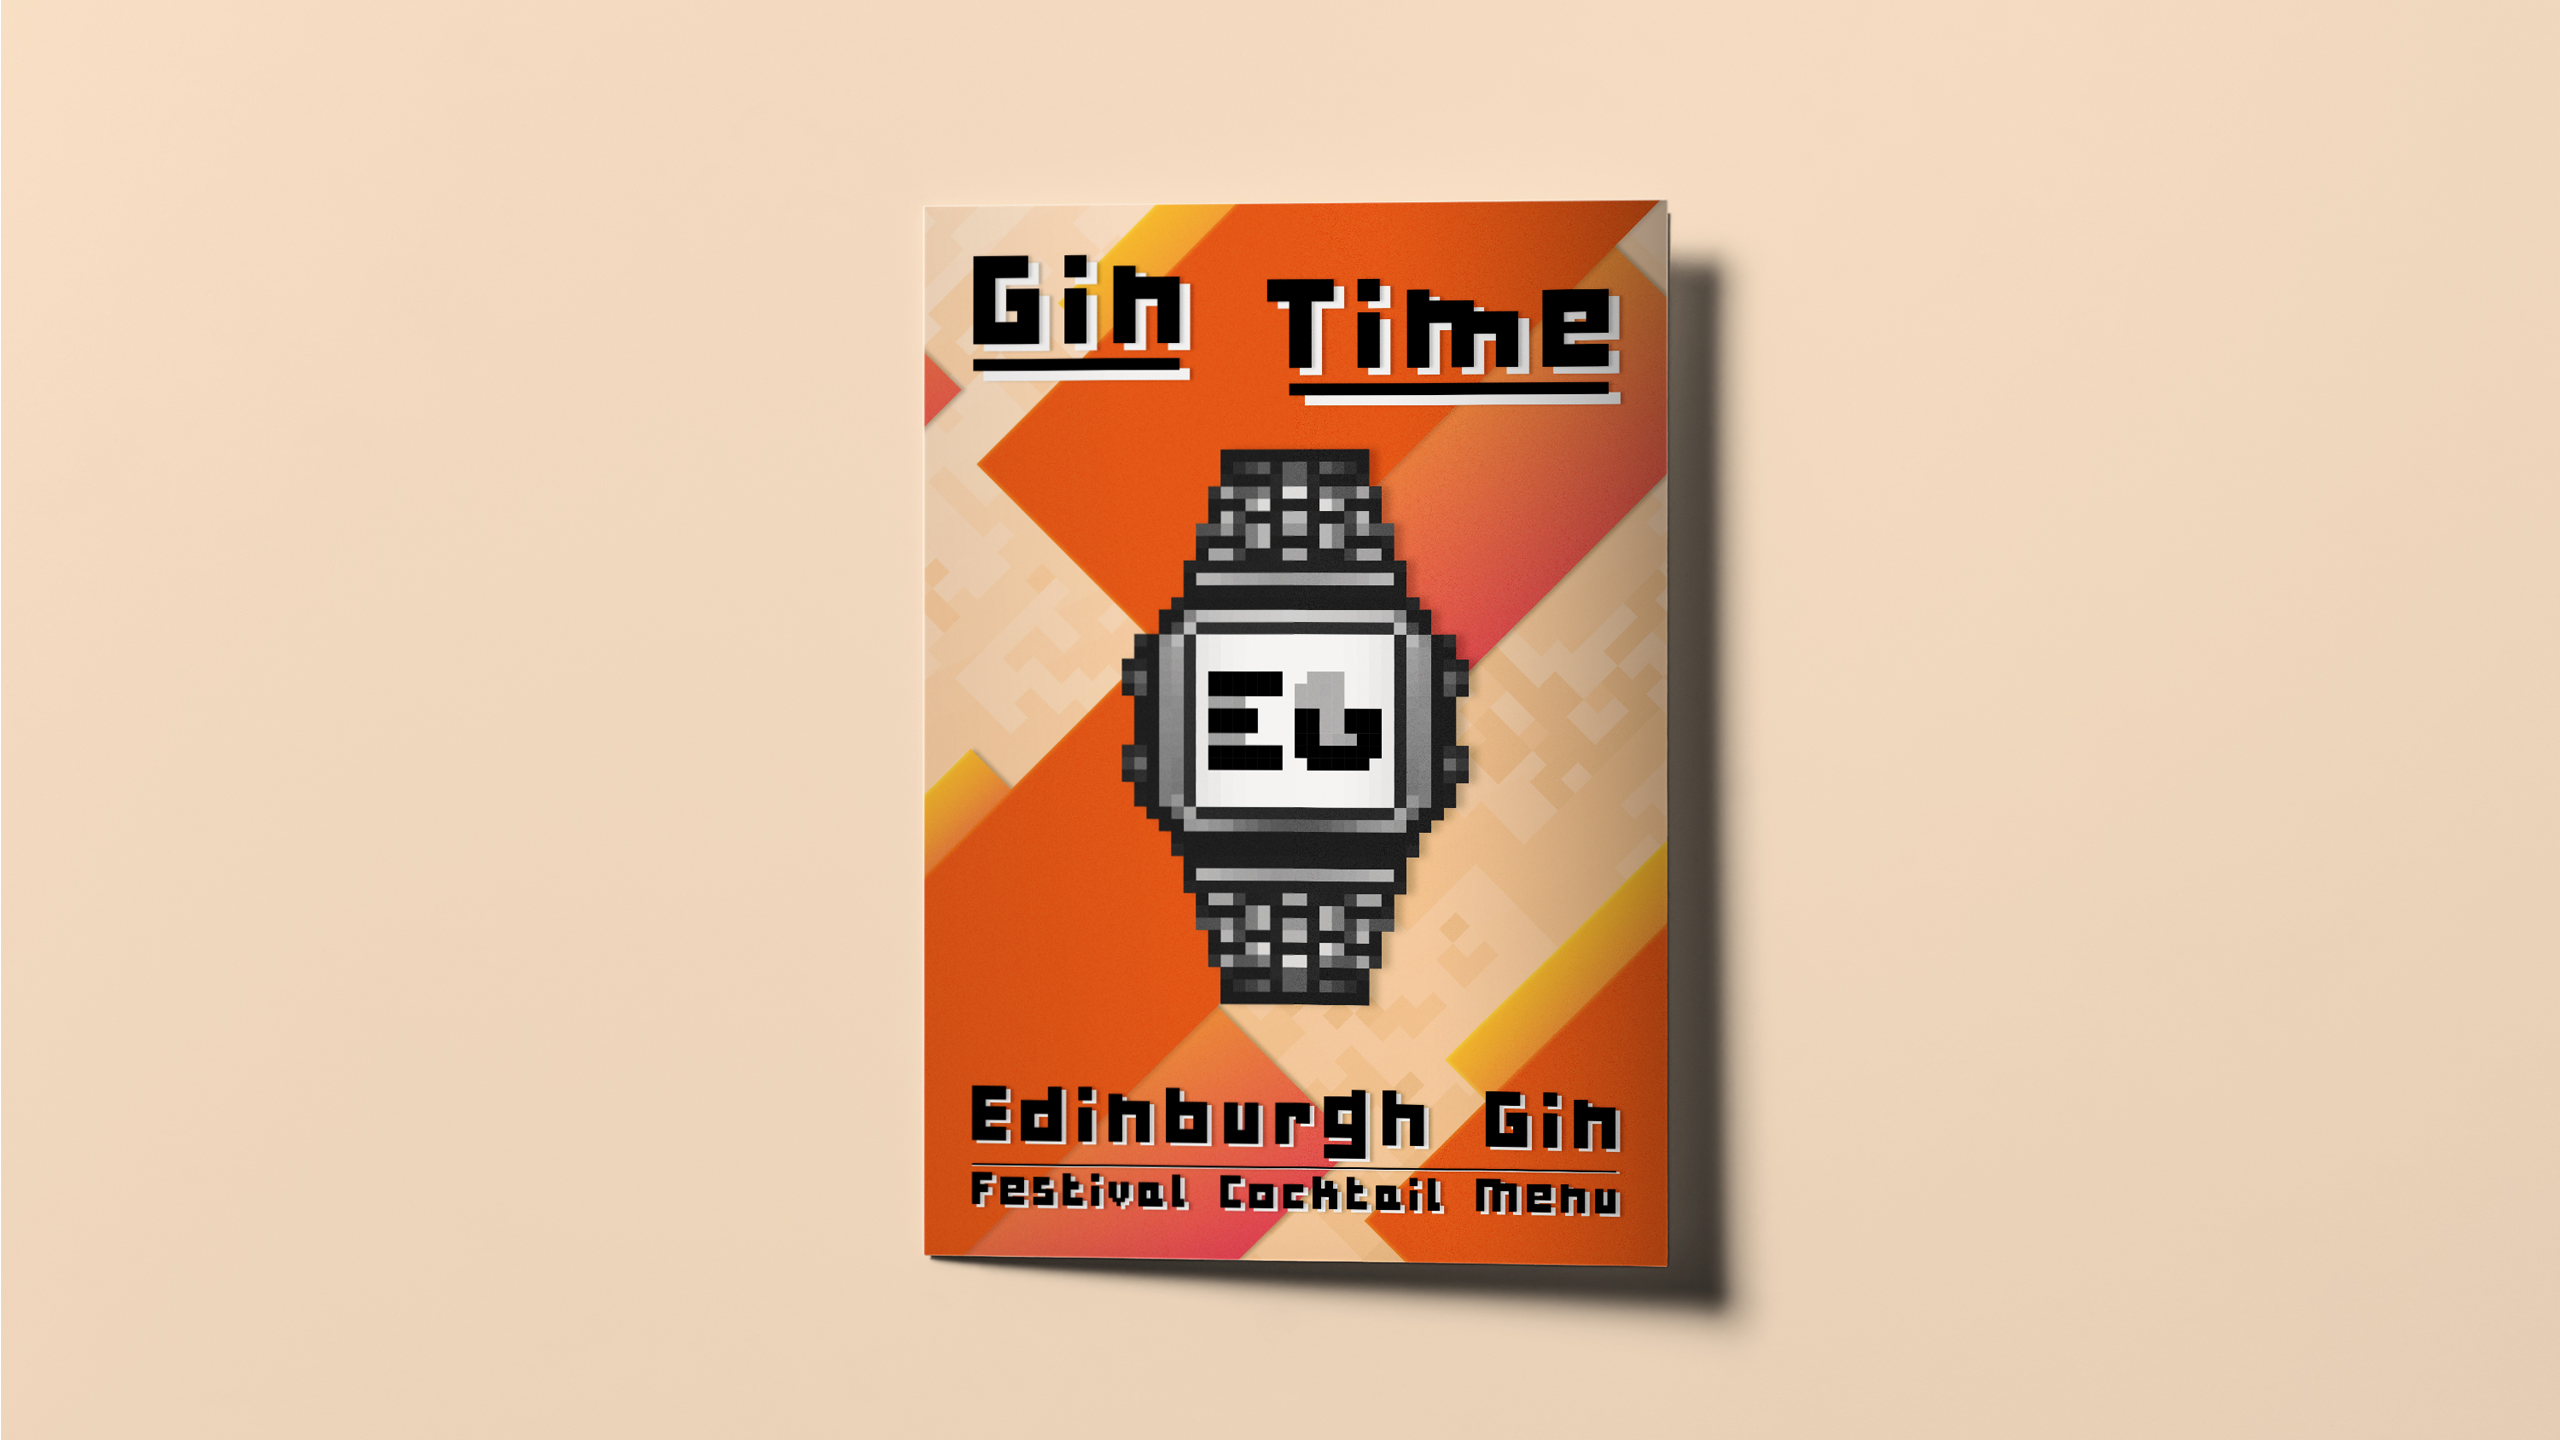 Edinburgh Gin Festival Cocktail menu designed by Dephined